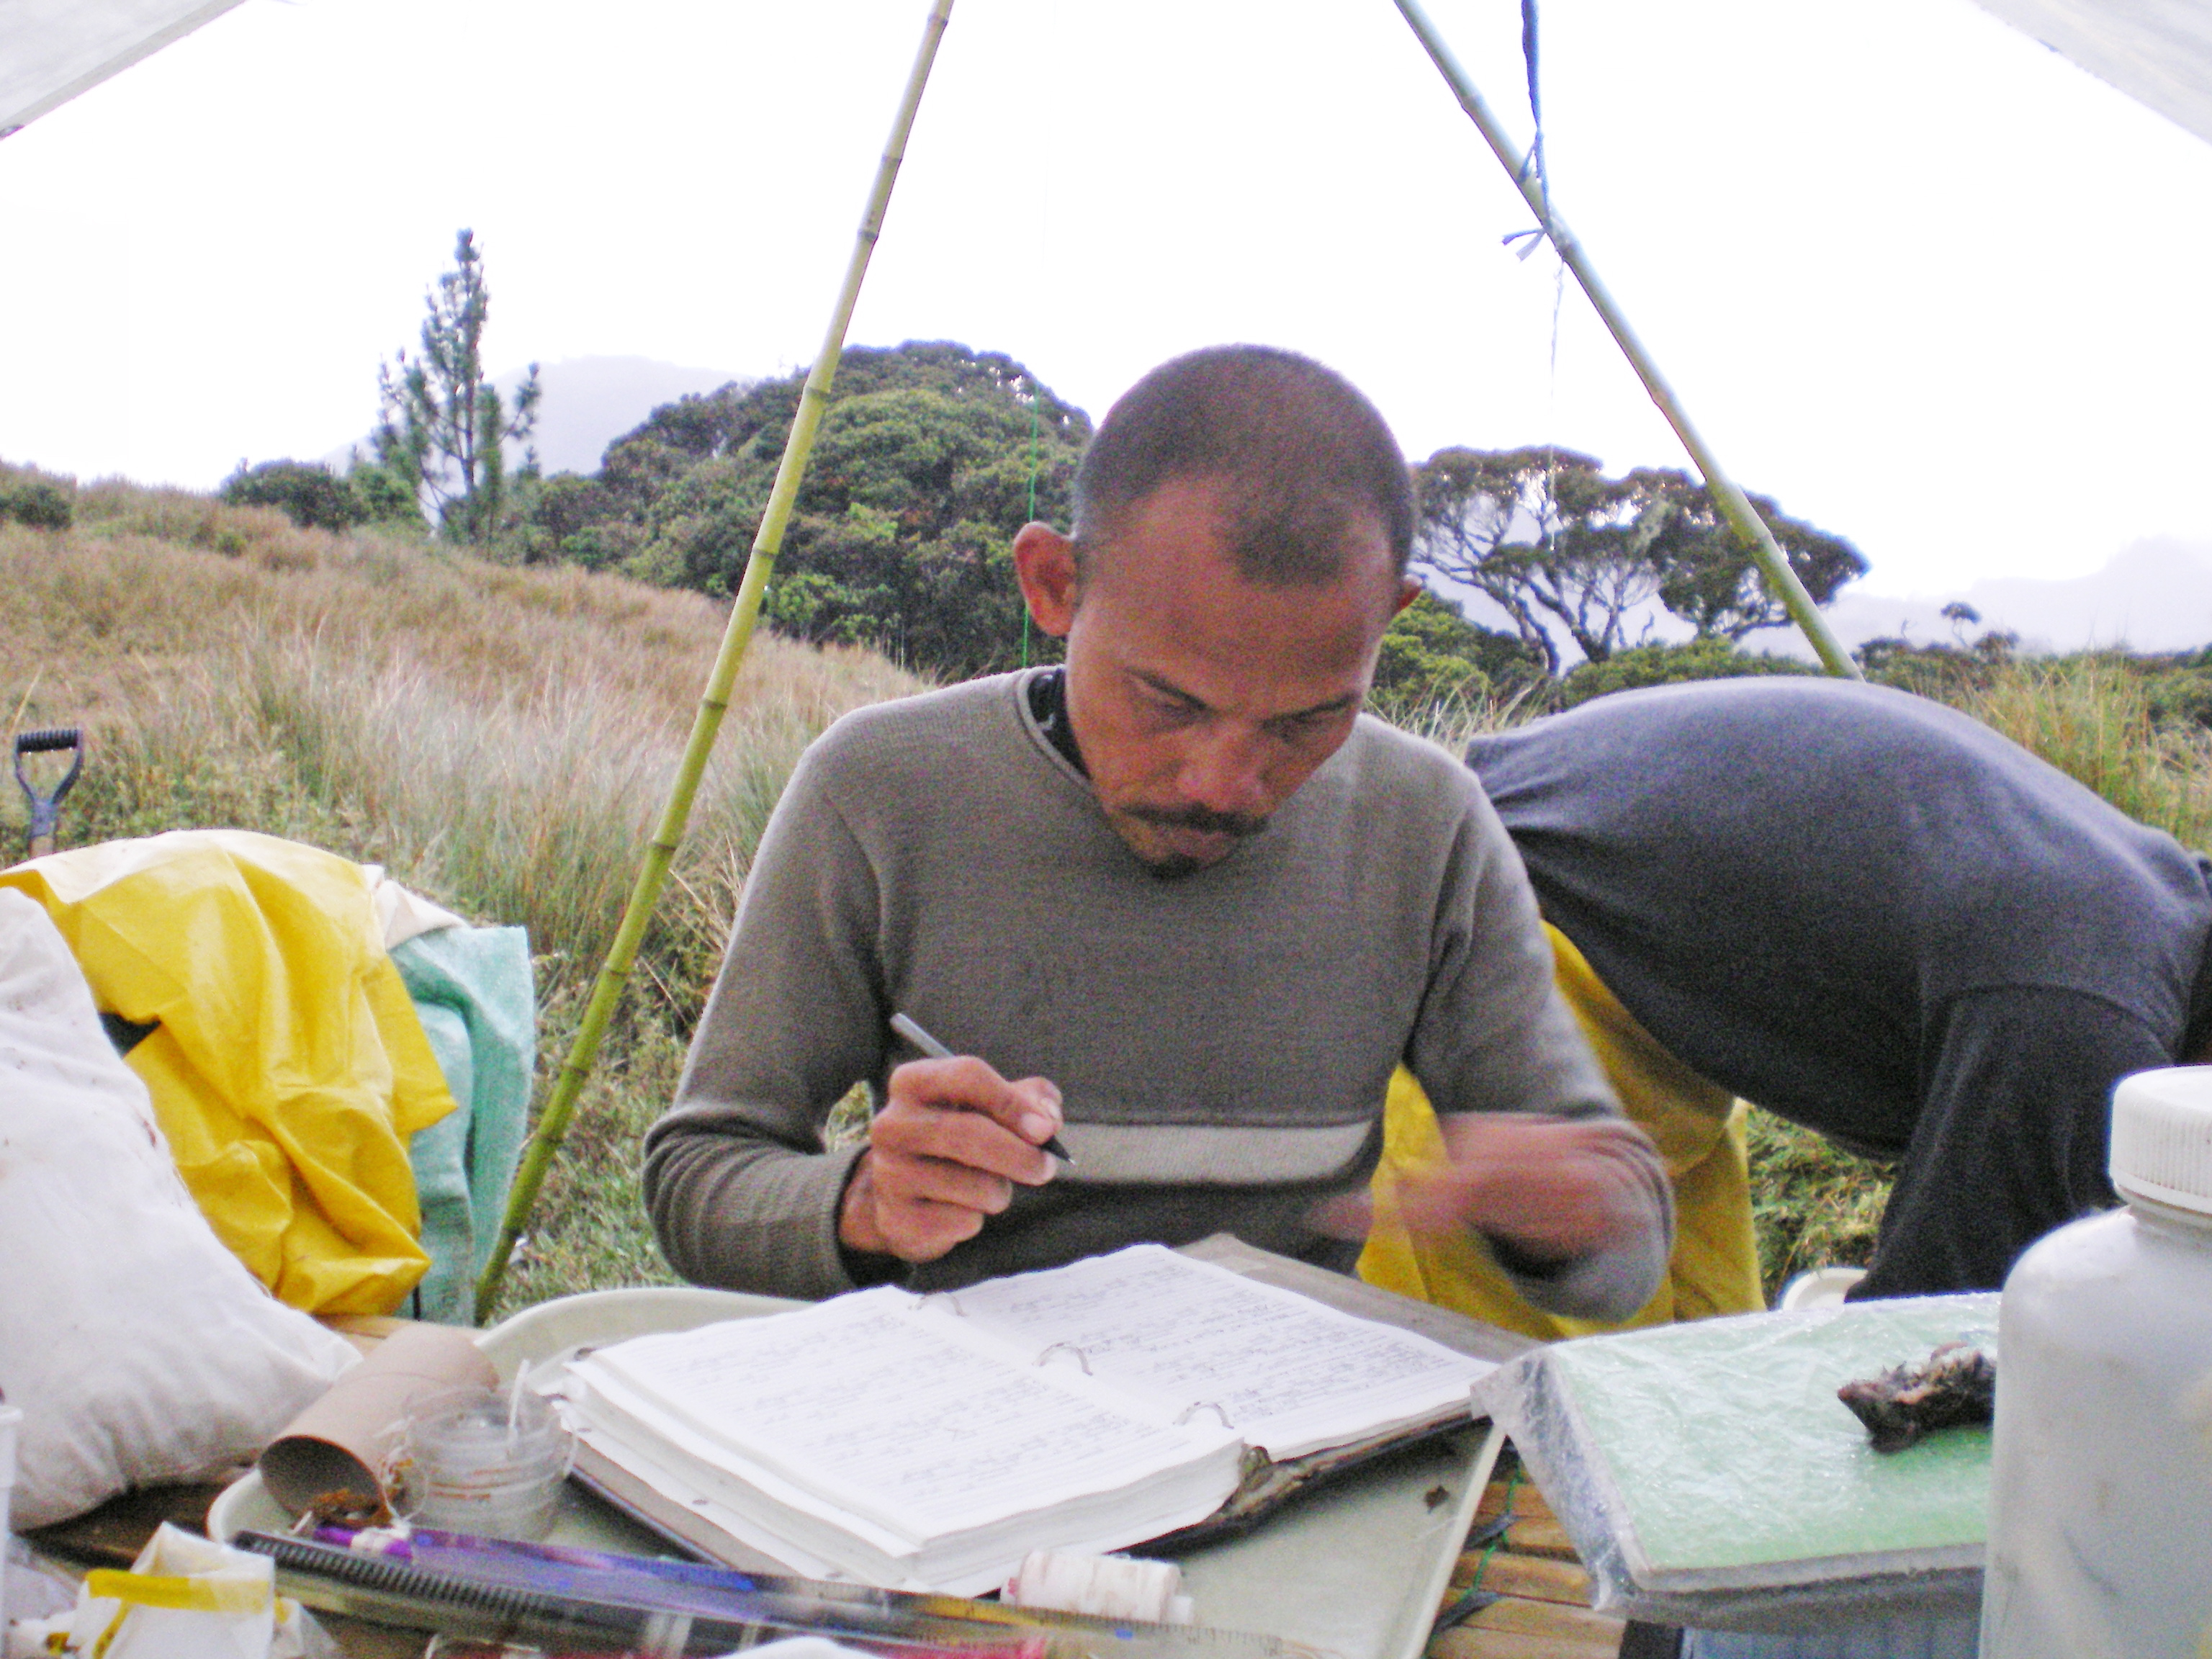 Researcher taking notes in the field